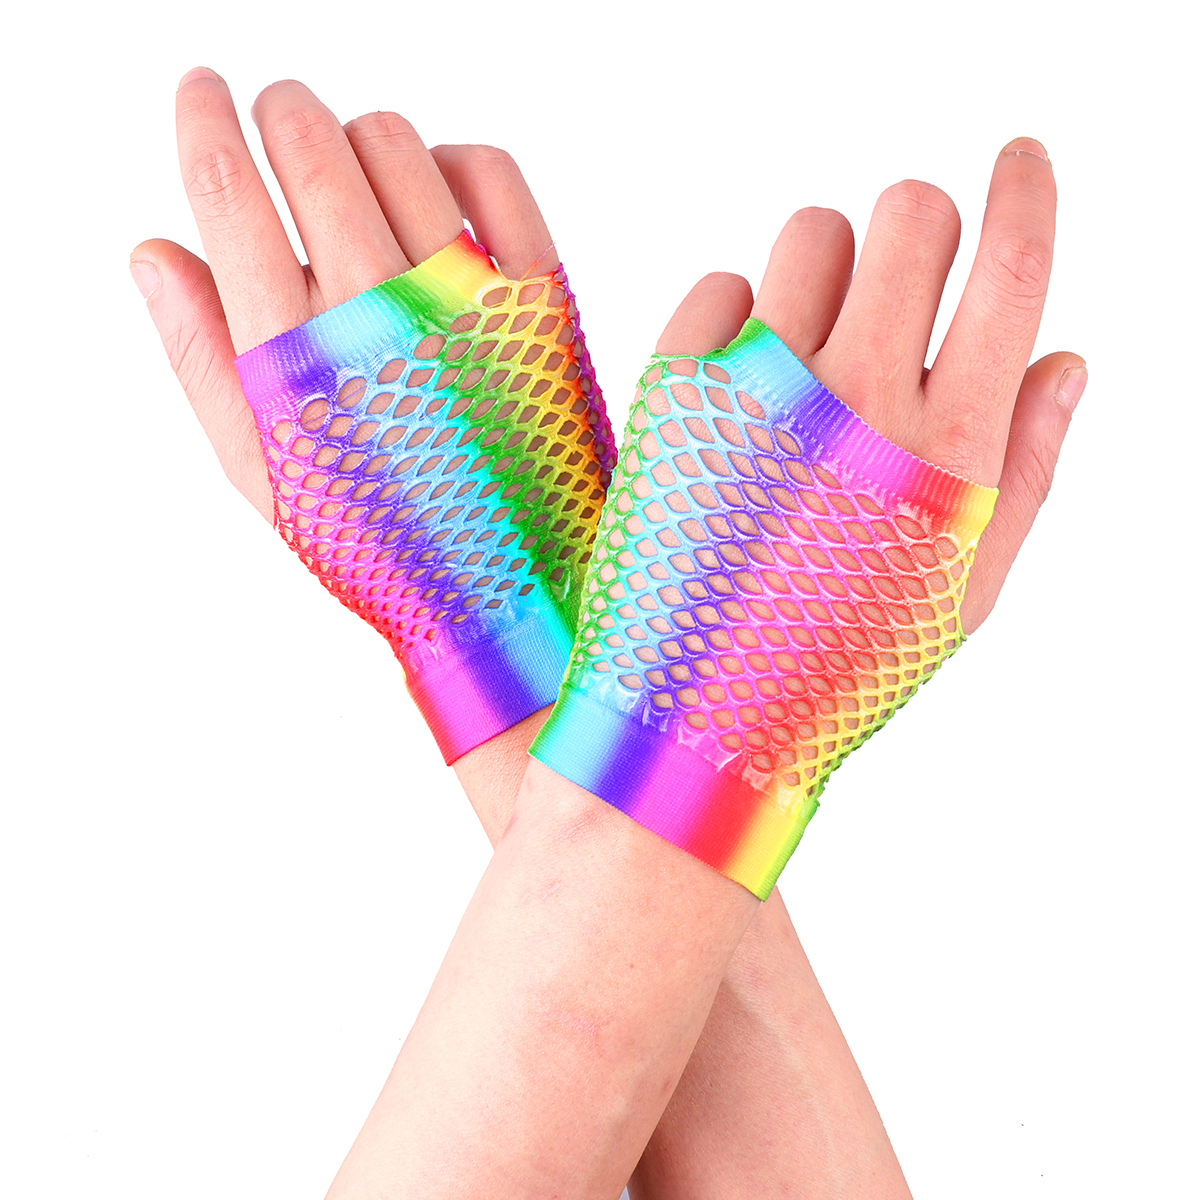 Colorful Retro Women Stretchy Fishnet Fingerless Gloves for 80s Party Supplies